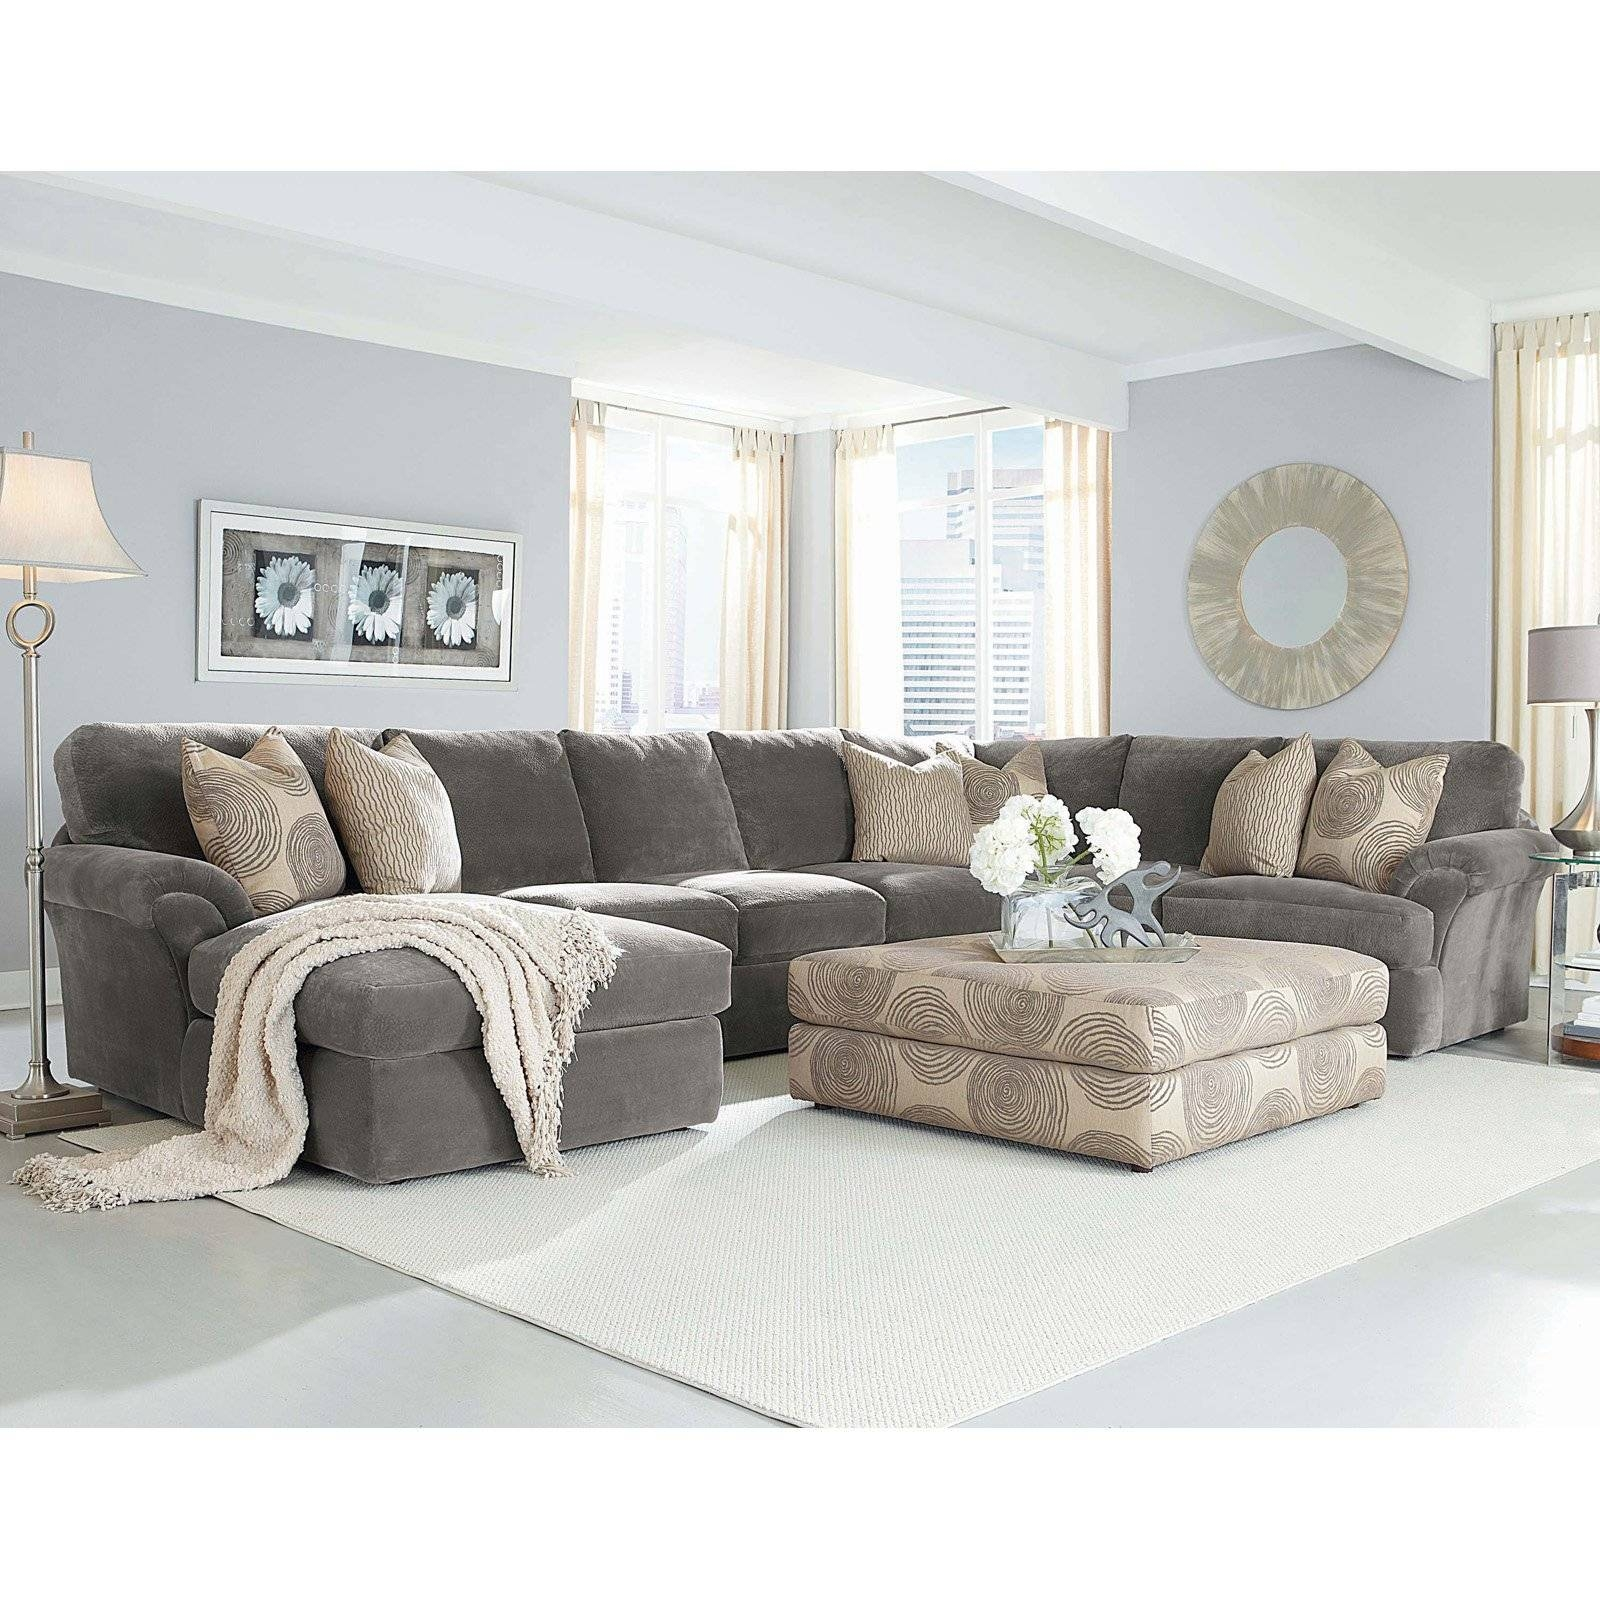 30 Collection of Champion Sectional Sofa